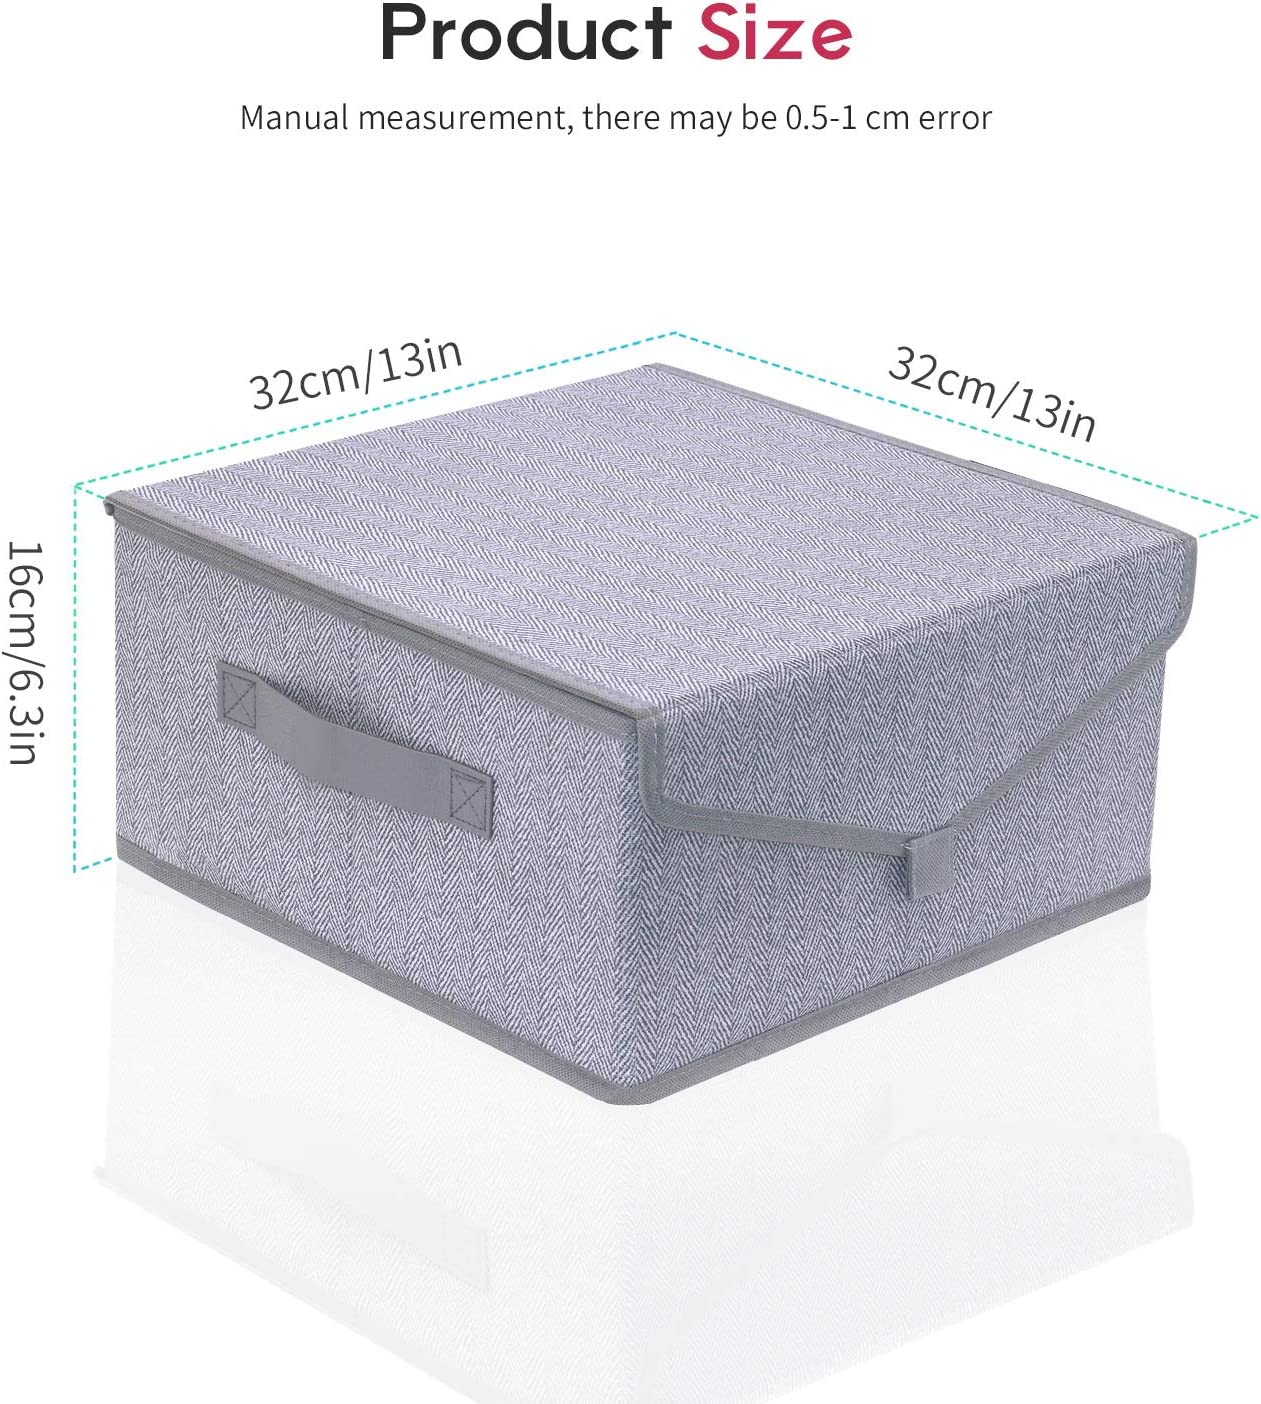 Nursery 2-Pack Herringbone Grey for Home Onlyeasy Foldable Storage Bins Boxes with Lids Closet 32x32x16 cm Decorative Fabric Collapsible Storage Cubes Organizer Basket with Handles MXRLB16P2